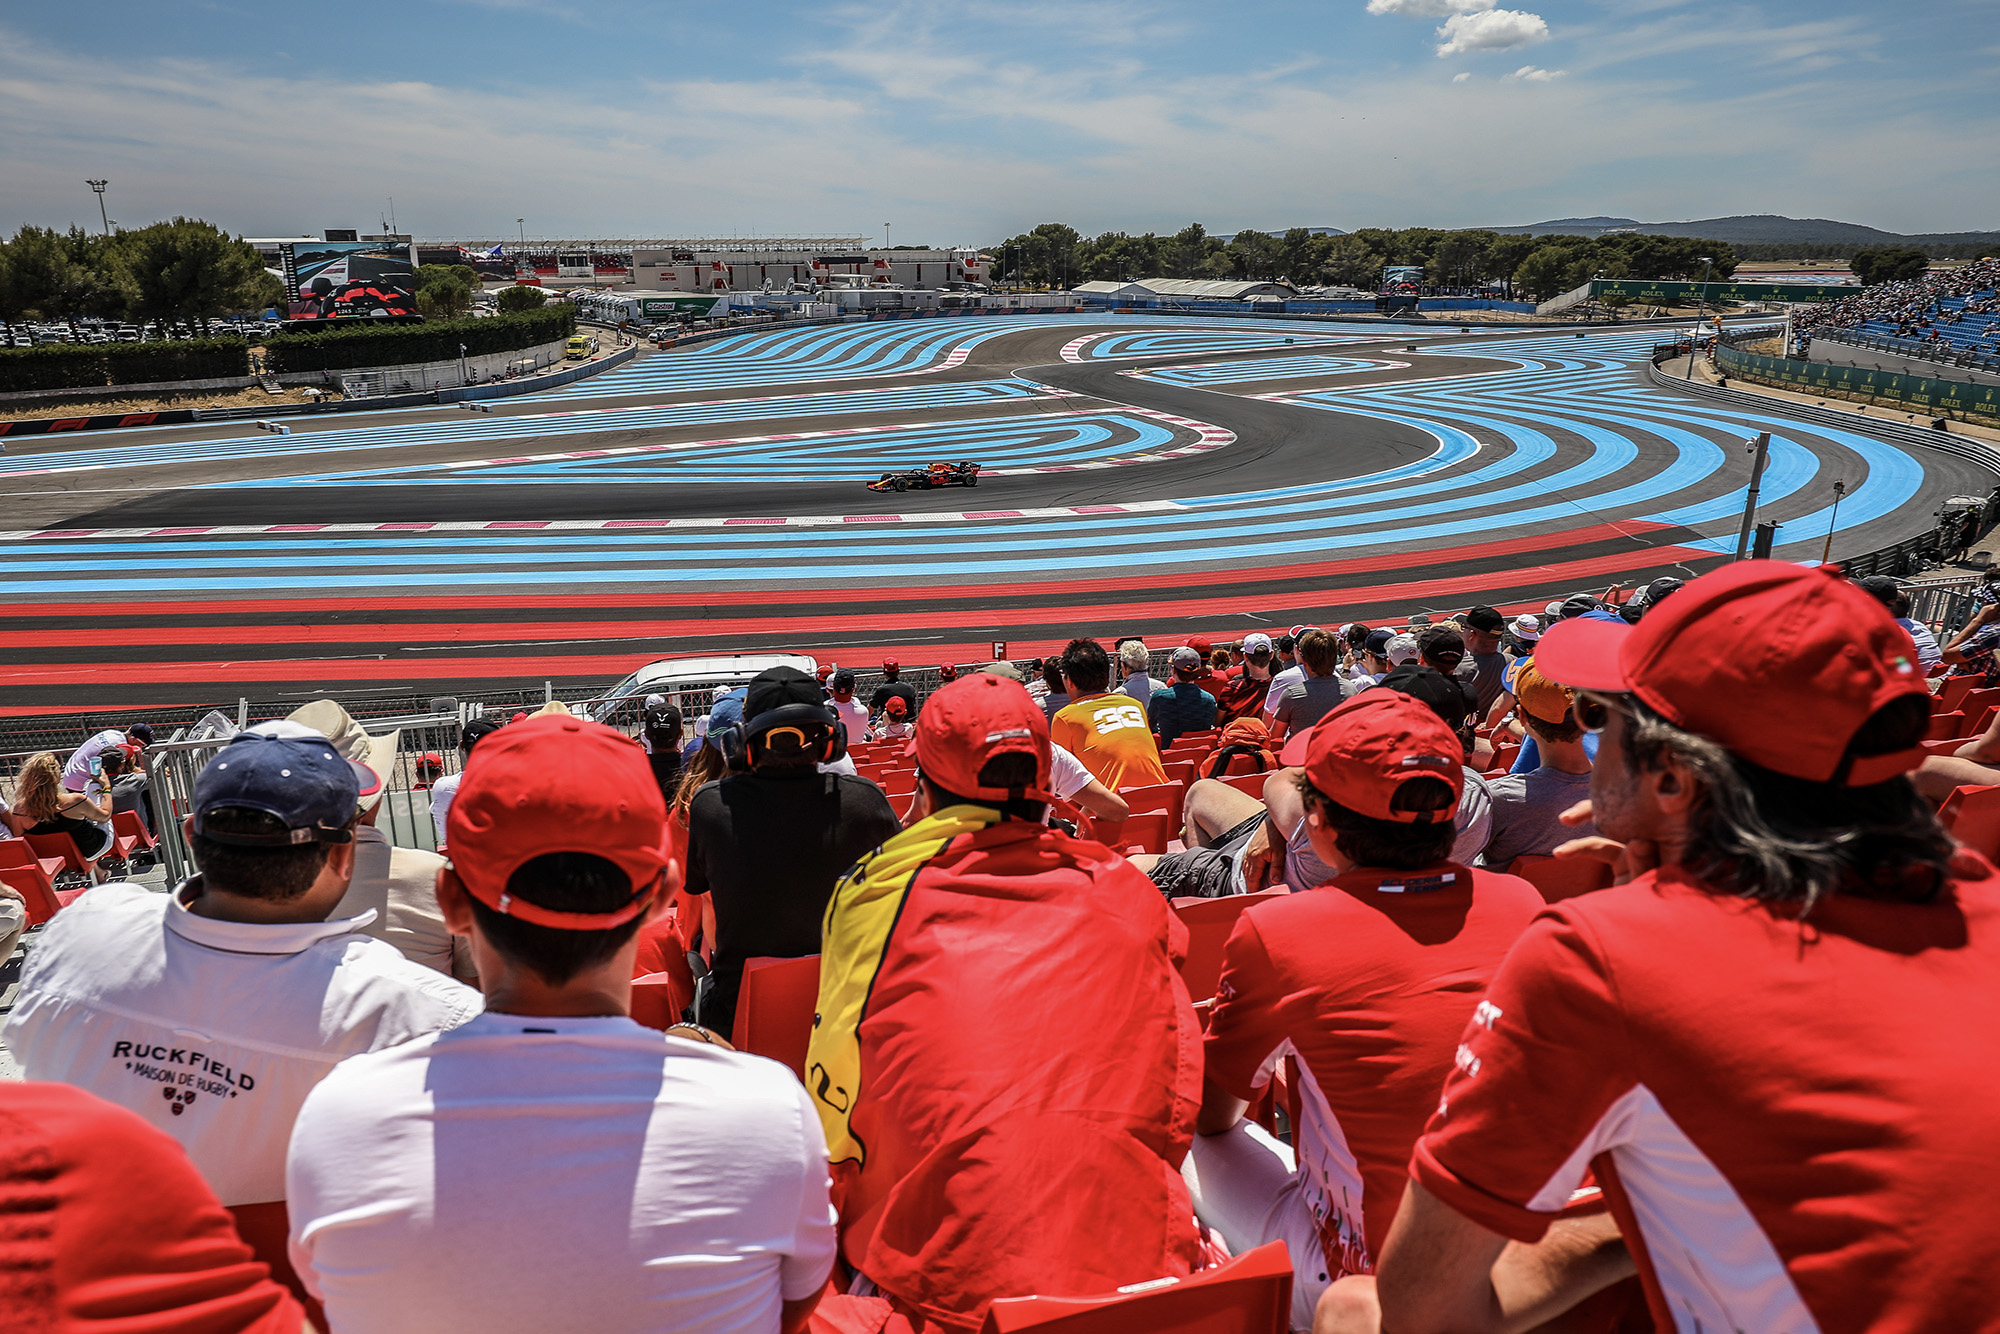 Spectators watching the rench Grand Prix at Paul Ricard